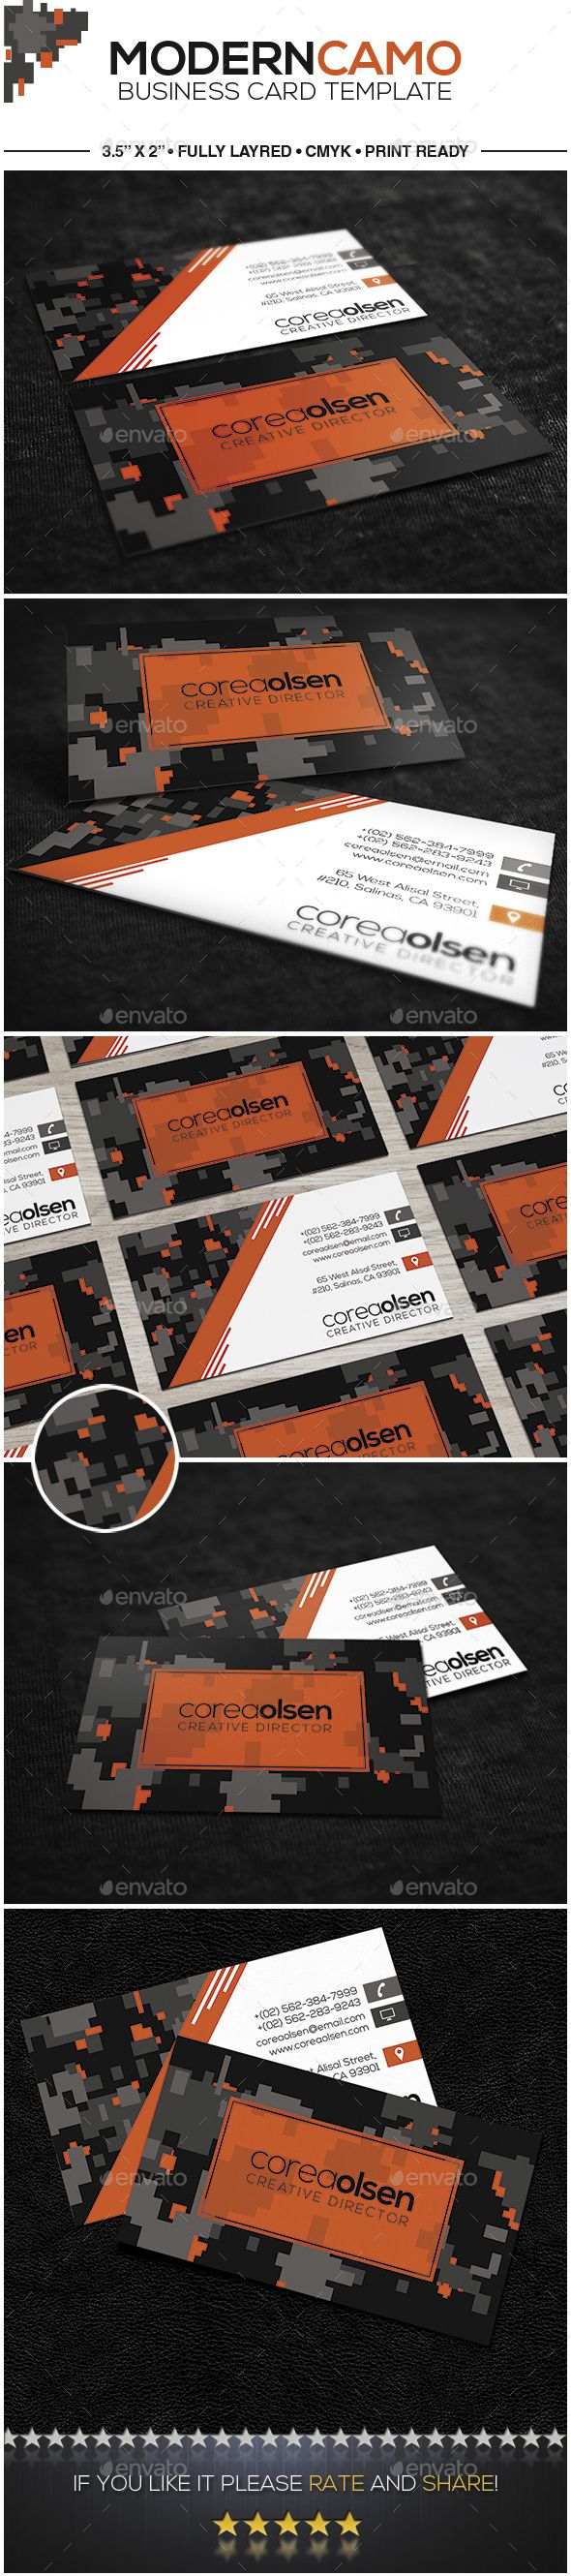 Modern Camouflage Business Card | Business cards, Card templates and ...